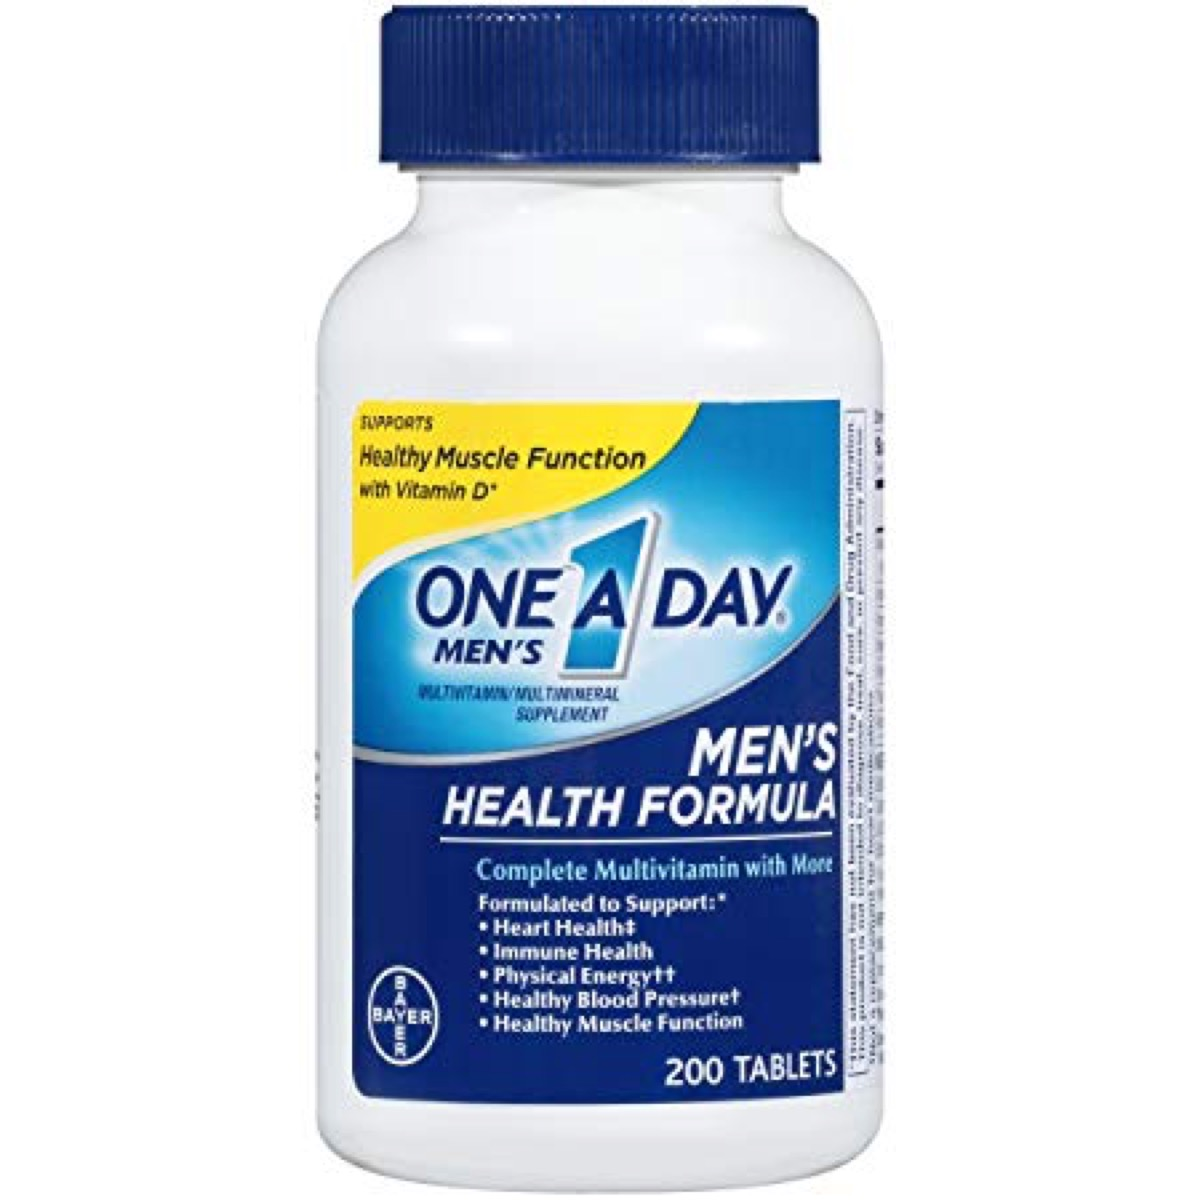 one a day, best multivitamin for men